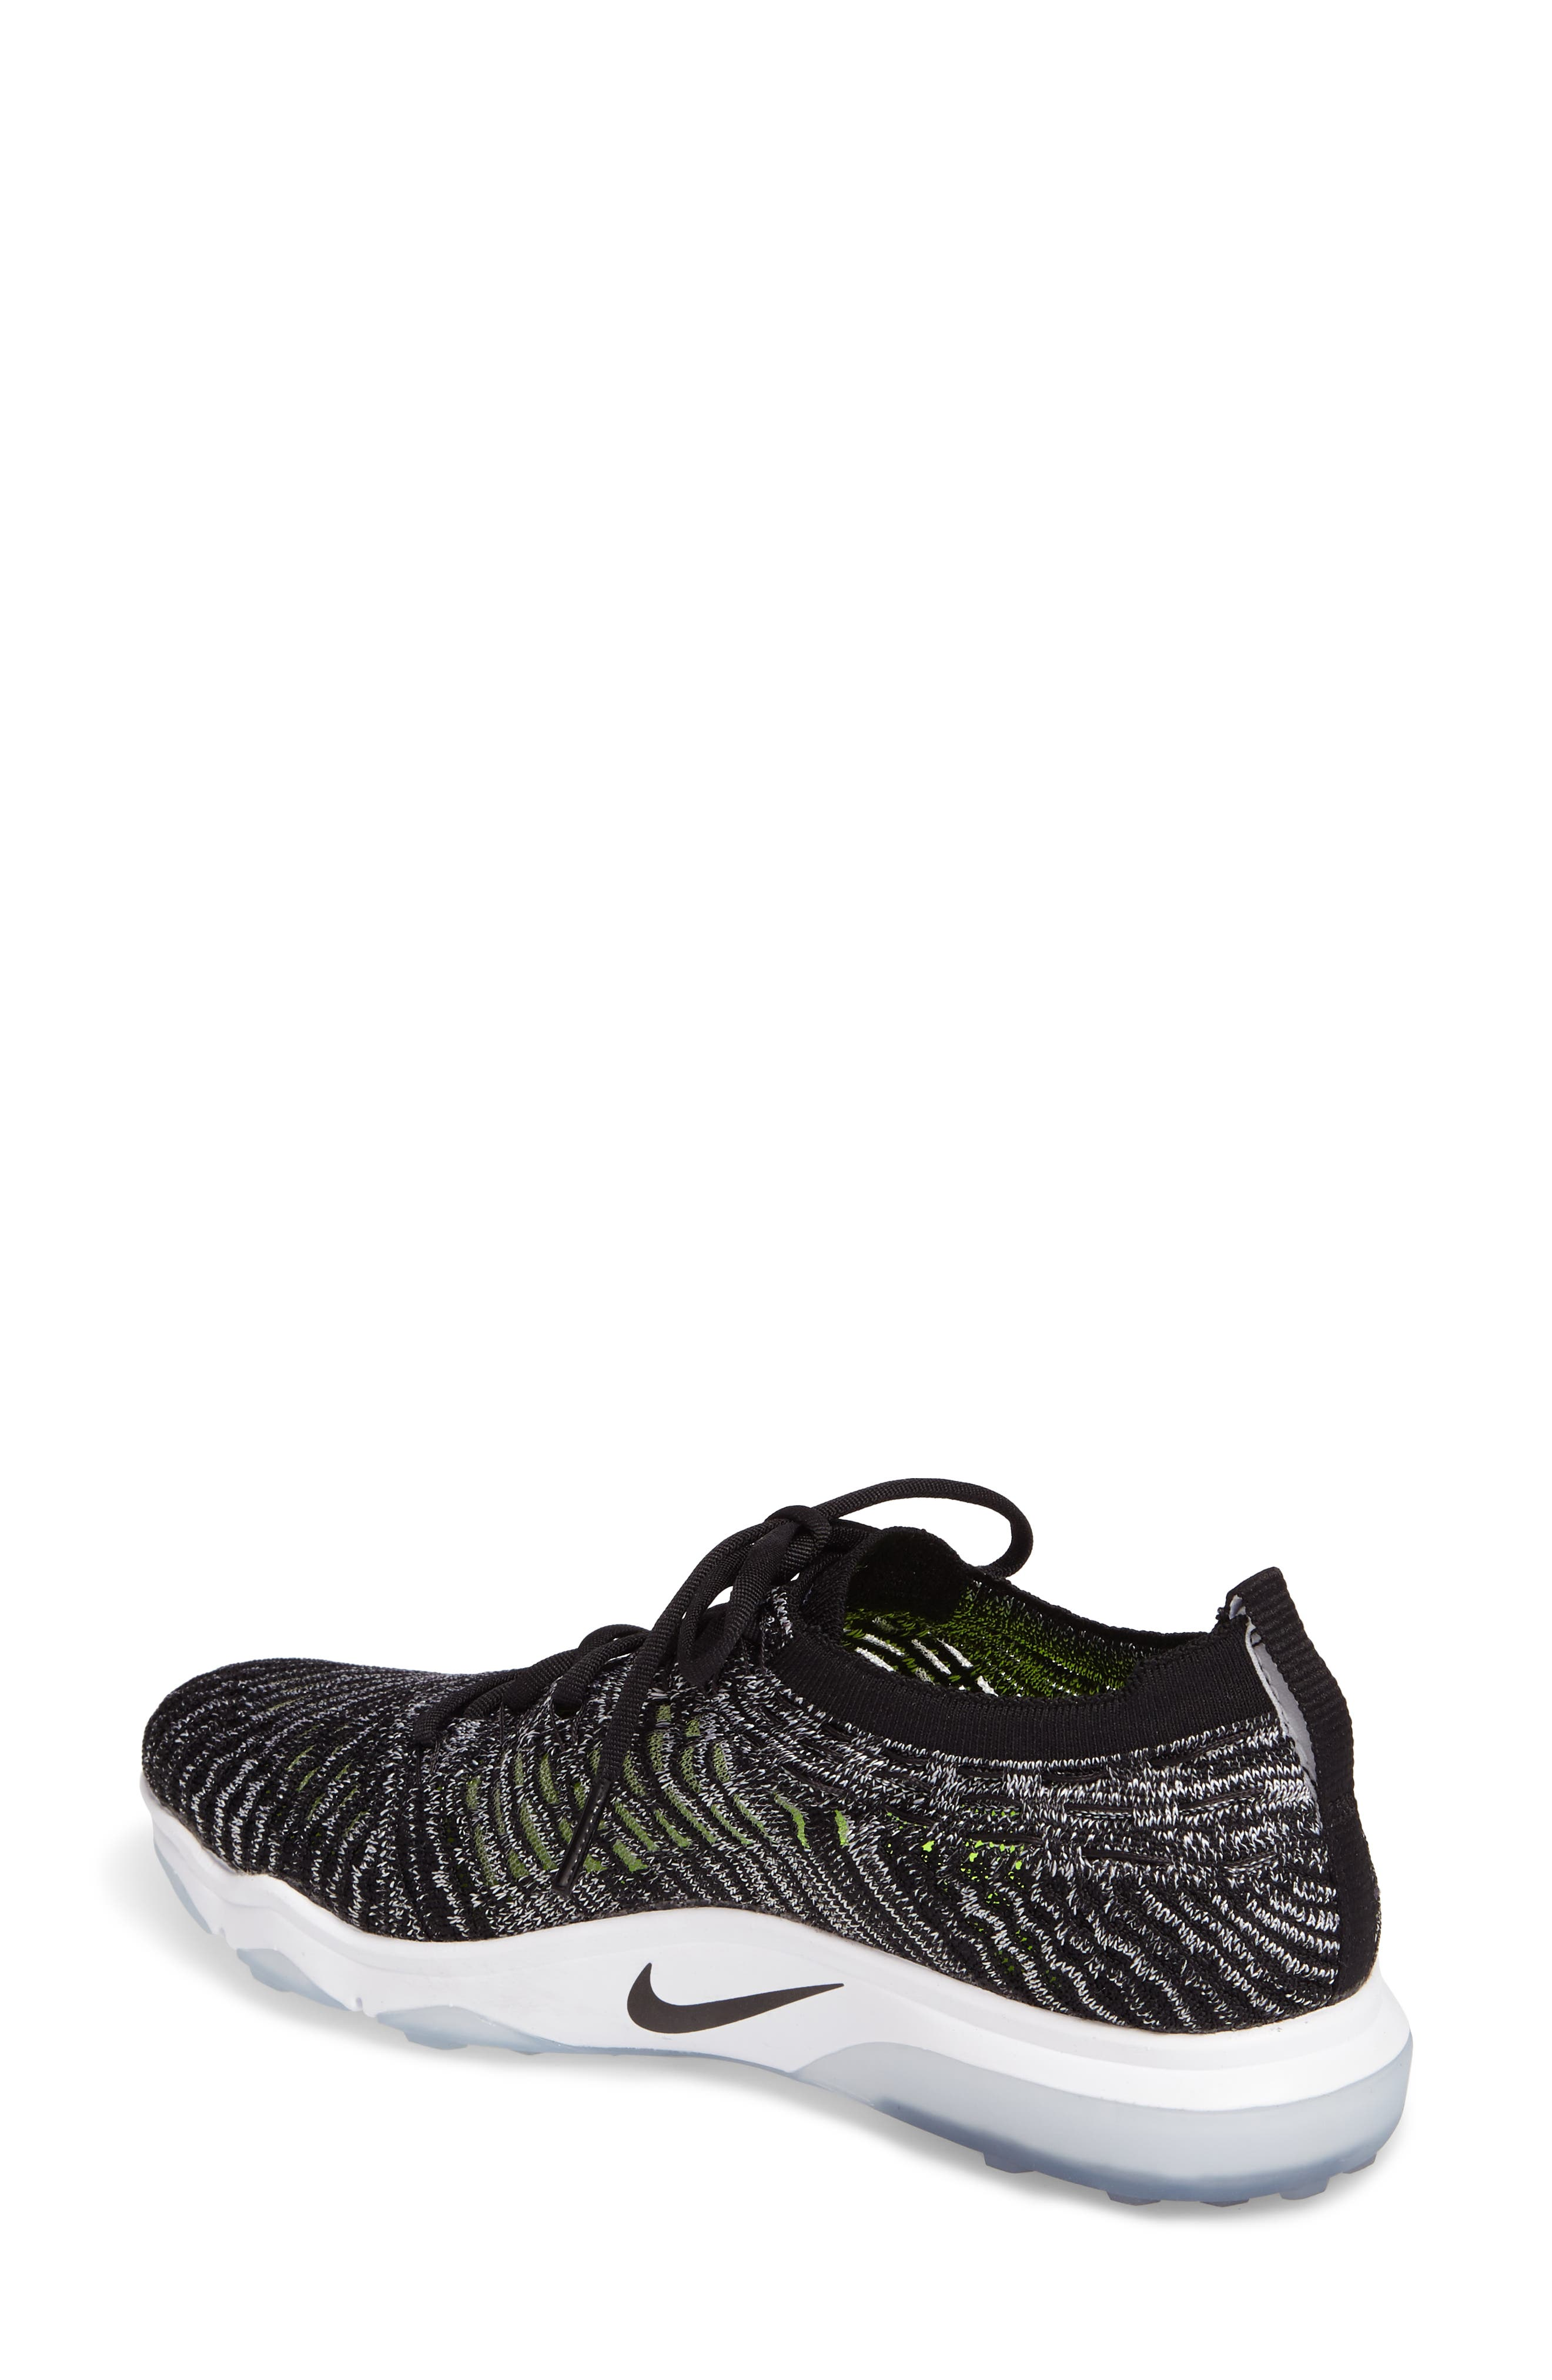 Air Zoom Fearless Flyknit Training Shoe,                             Alternate thumbnail 2, color,                             Black/ White/ White